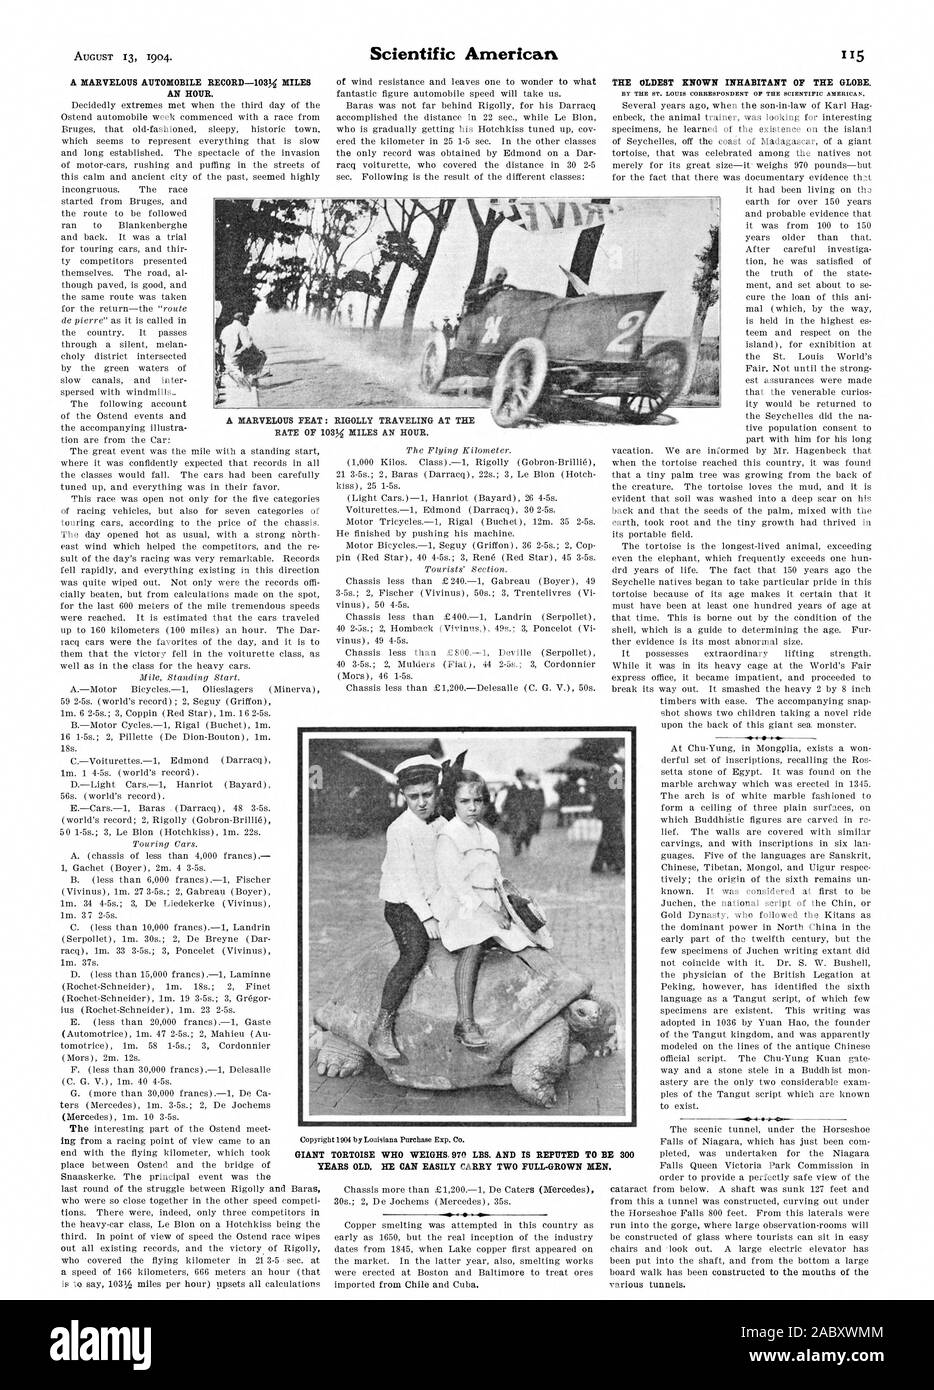 A MARVELOUS AUTOMOBILE RECORD-103% MILES AN HOUR. THE OLDEST KNOWN INHABITANT OF THE GLOBE. A MARVELOUS FEAT: RICrOLLY TRAVELING AT THE RATE OF 103% MILES AN HOUR. YEARS OLD. HE CAN EASILY CARRY TWO FULL GROWN MEN., scientific american, 1904-08-13 Stock Photo